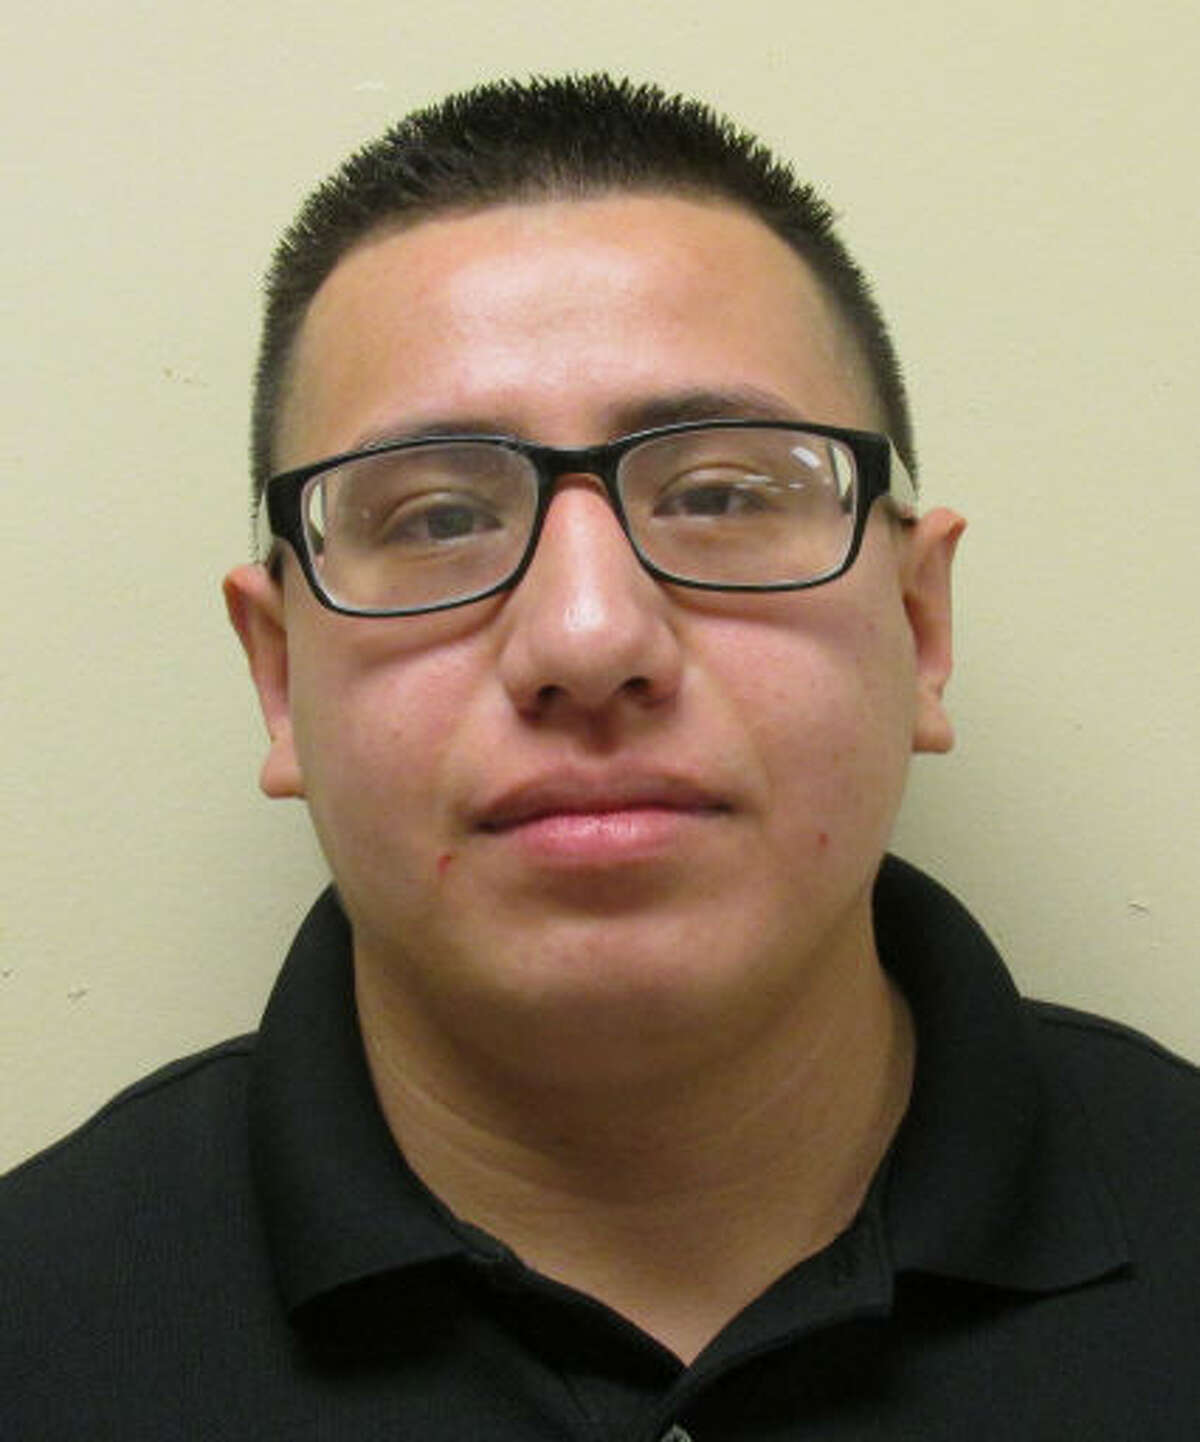 Andrew Ramos, 24, has been charged with aggravated assault with a deadly weapon/ family violence.